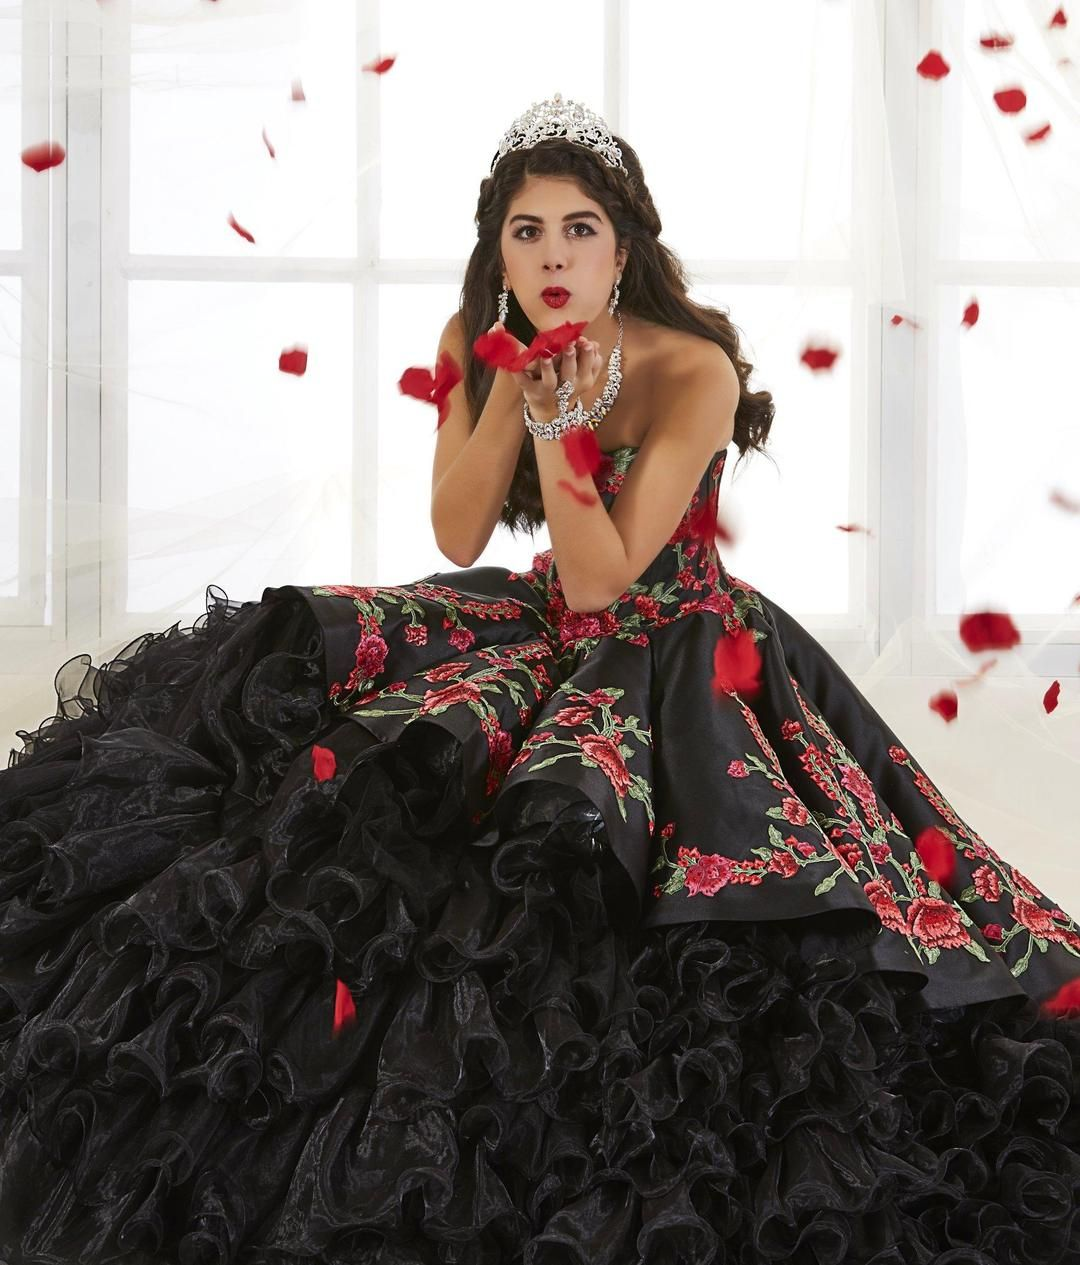 Rose Charro Quinceanera Dress By House Of Wu 26892 In 2021 Pretty Quinceanera Dresses Red Quinceanera Dresses Charro Quinceanera Dresses [ 1265 x 1080 Pixel ]